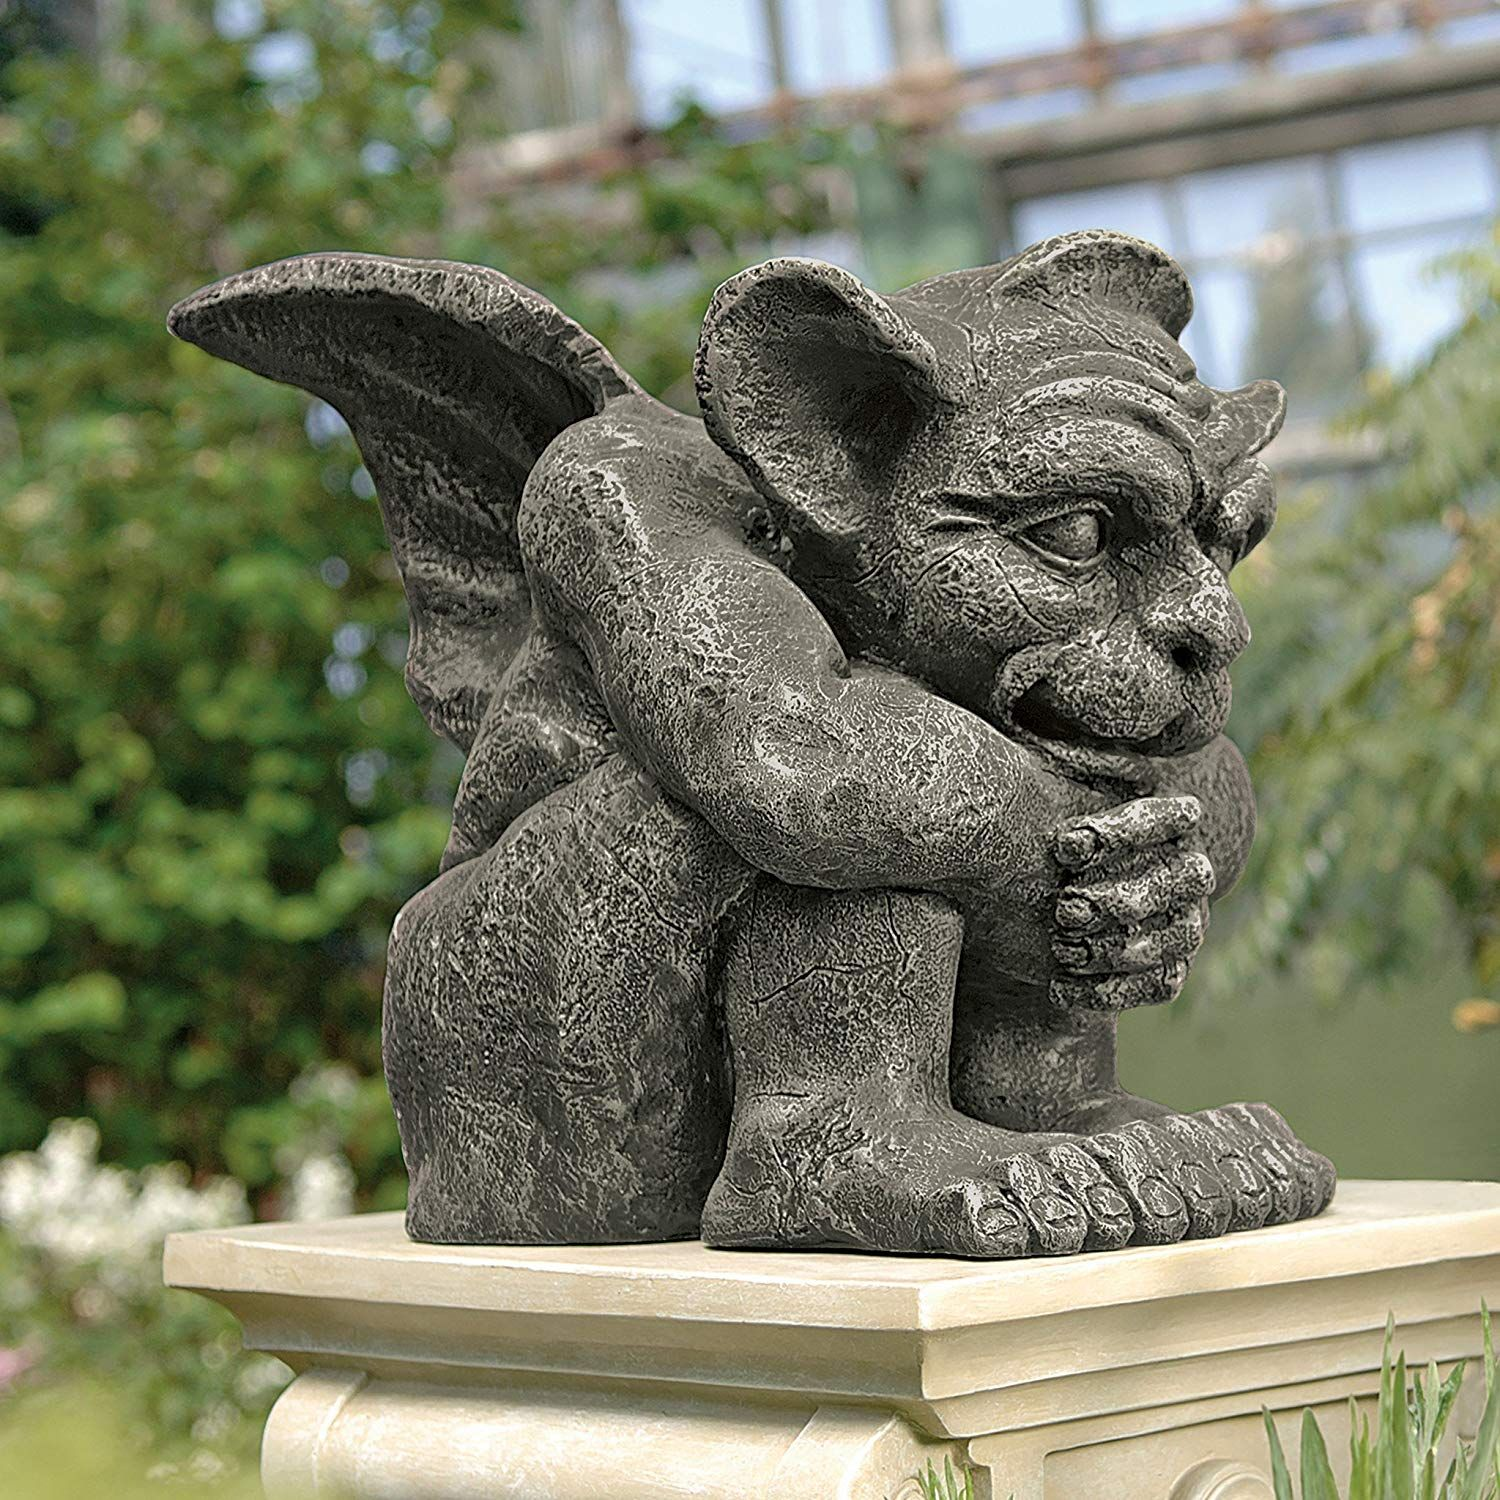 Haloween Decorations Emmett The Gargoyle Gothic Decor Statue